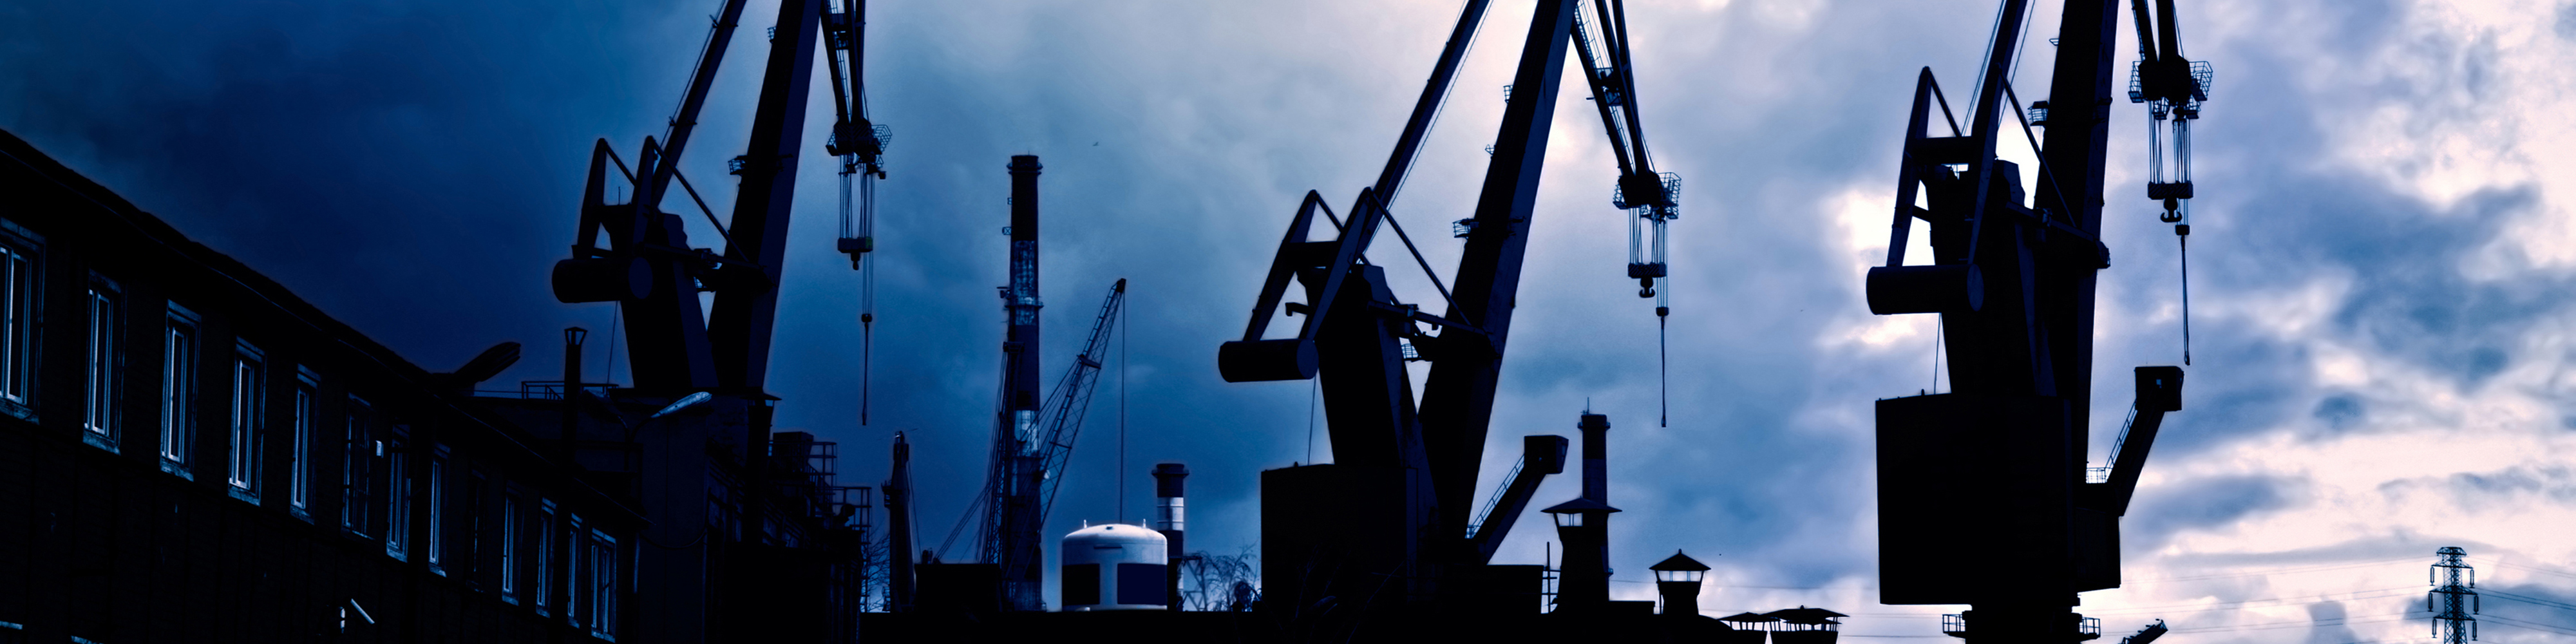 Industrial conceptual image. Dark and sullen clouds over industrial shipyard area with cranes.